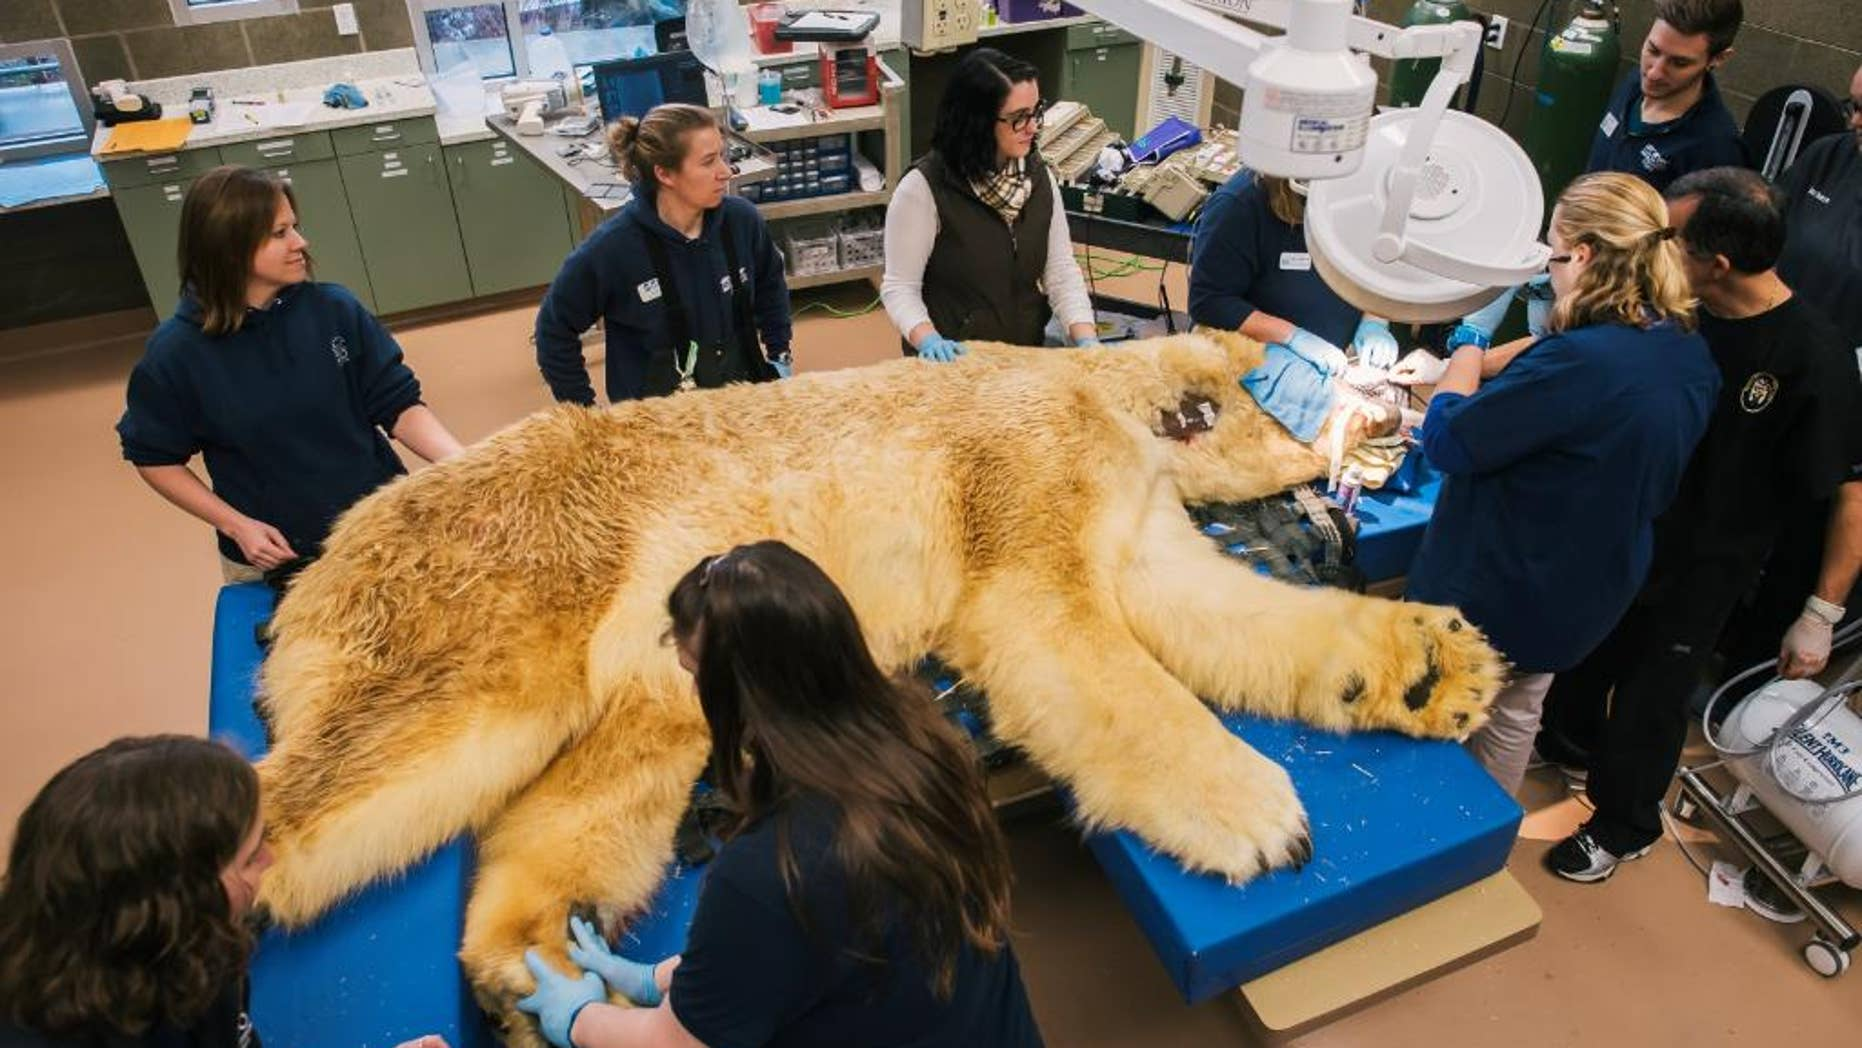 In this Friday, Feb., 6, 2015 photo, provided by the Point Defiance Zoo and Aquarium, veterinarians and support staff work to remove three broken or decayed teeth from a 29-year-old polar bear at the Point Defiance Zoo and Aquarium in Tacoma, Wash. The 880-pound bear, called Boris, is one of the oldest polar bears in North American zoos and has lived nearly twice as long as polar bears in the wild. (AP Photo/Point Defiance Zoo and Aquarium, Ingrid Barrentine)